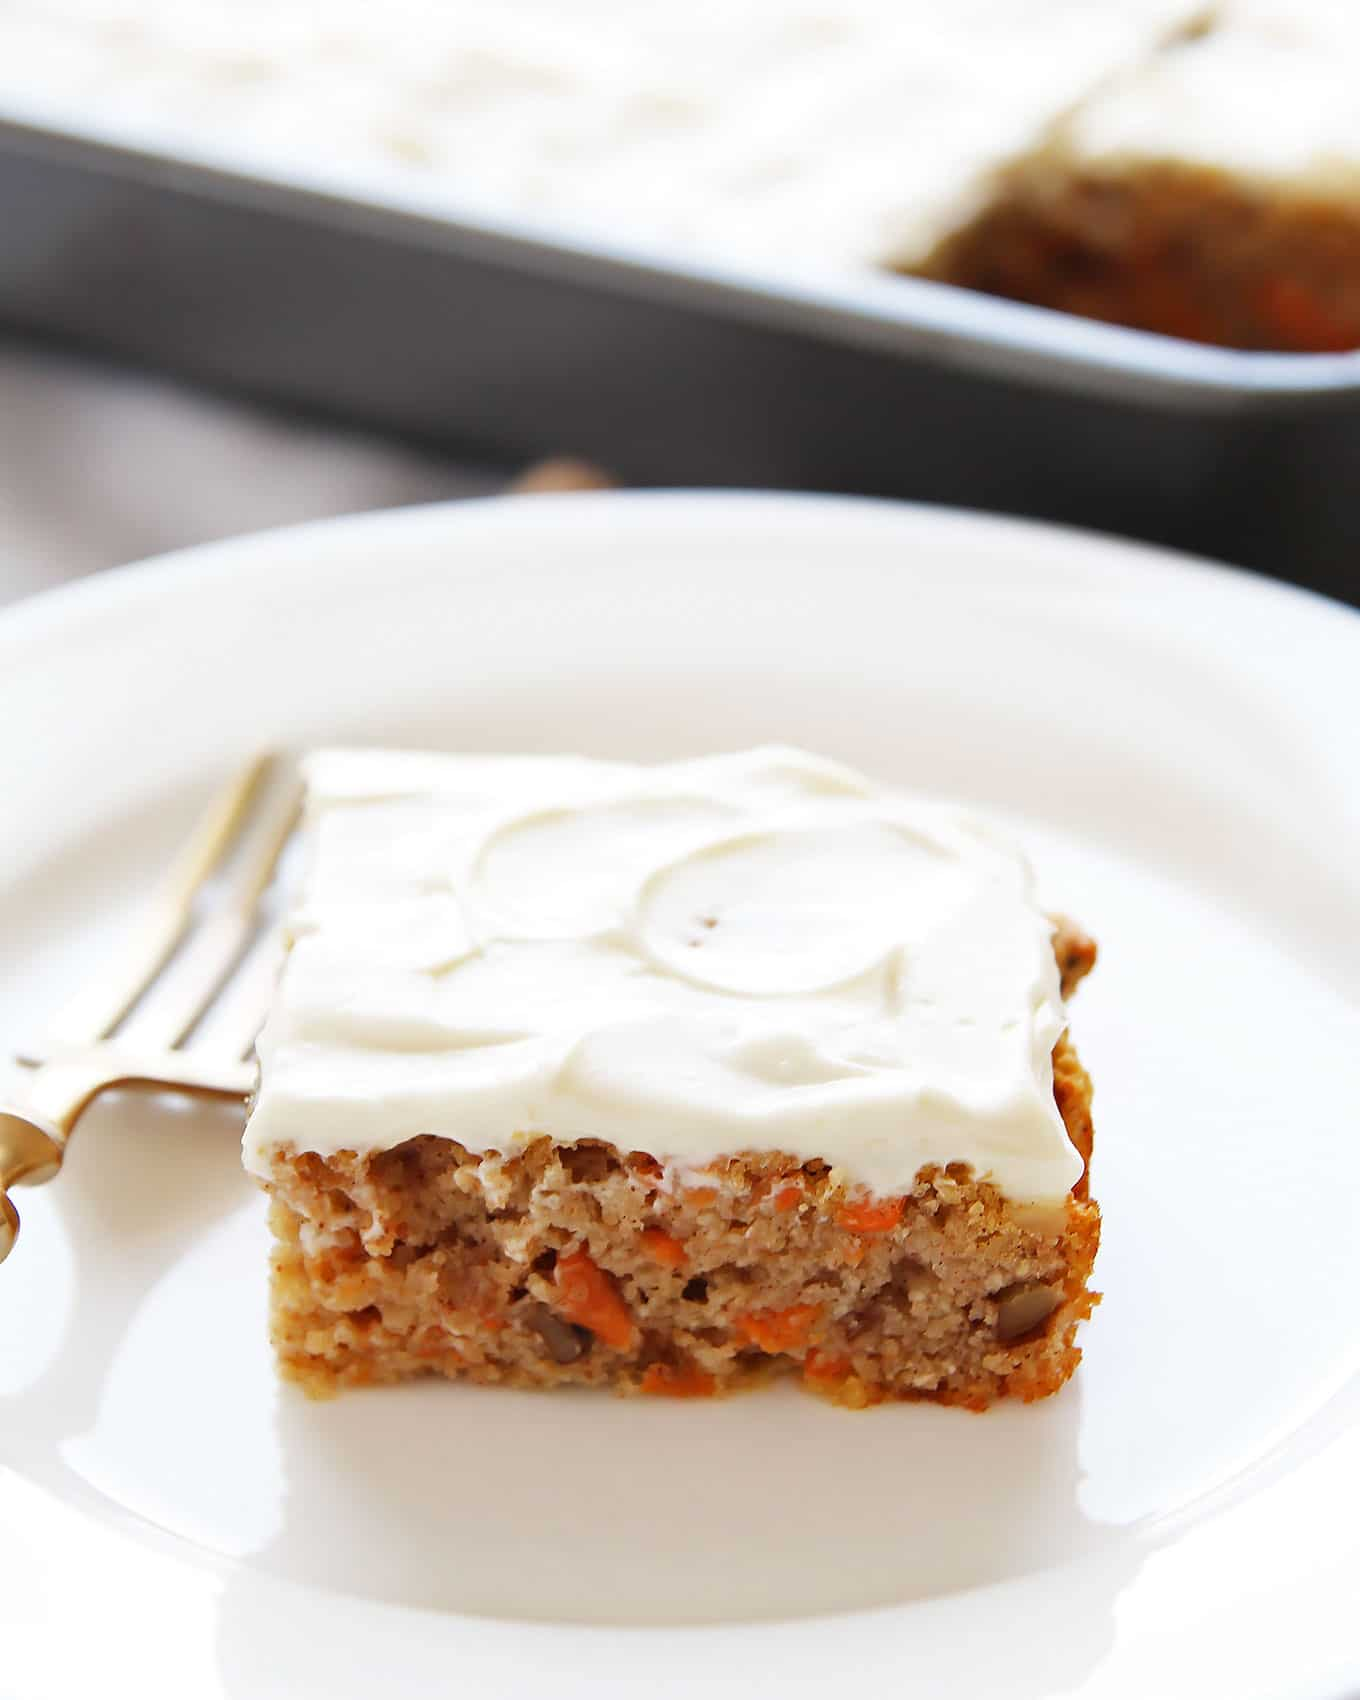 Paleo Carrot Cake with Frosting